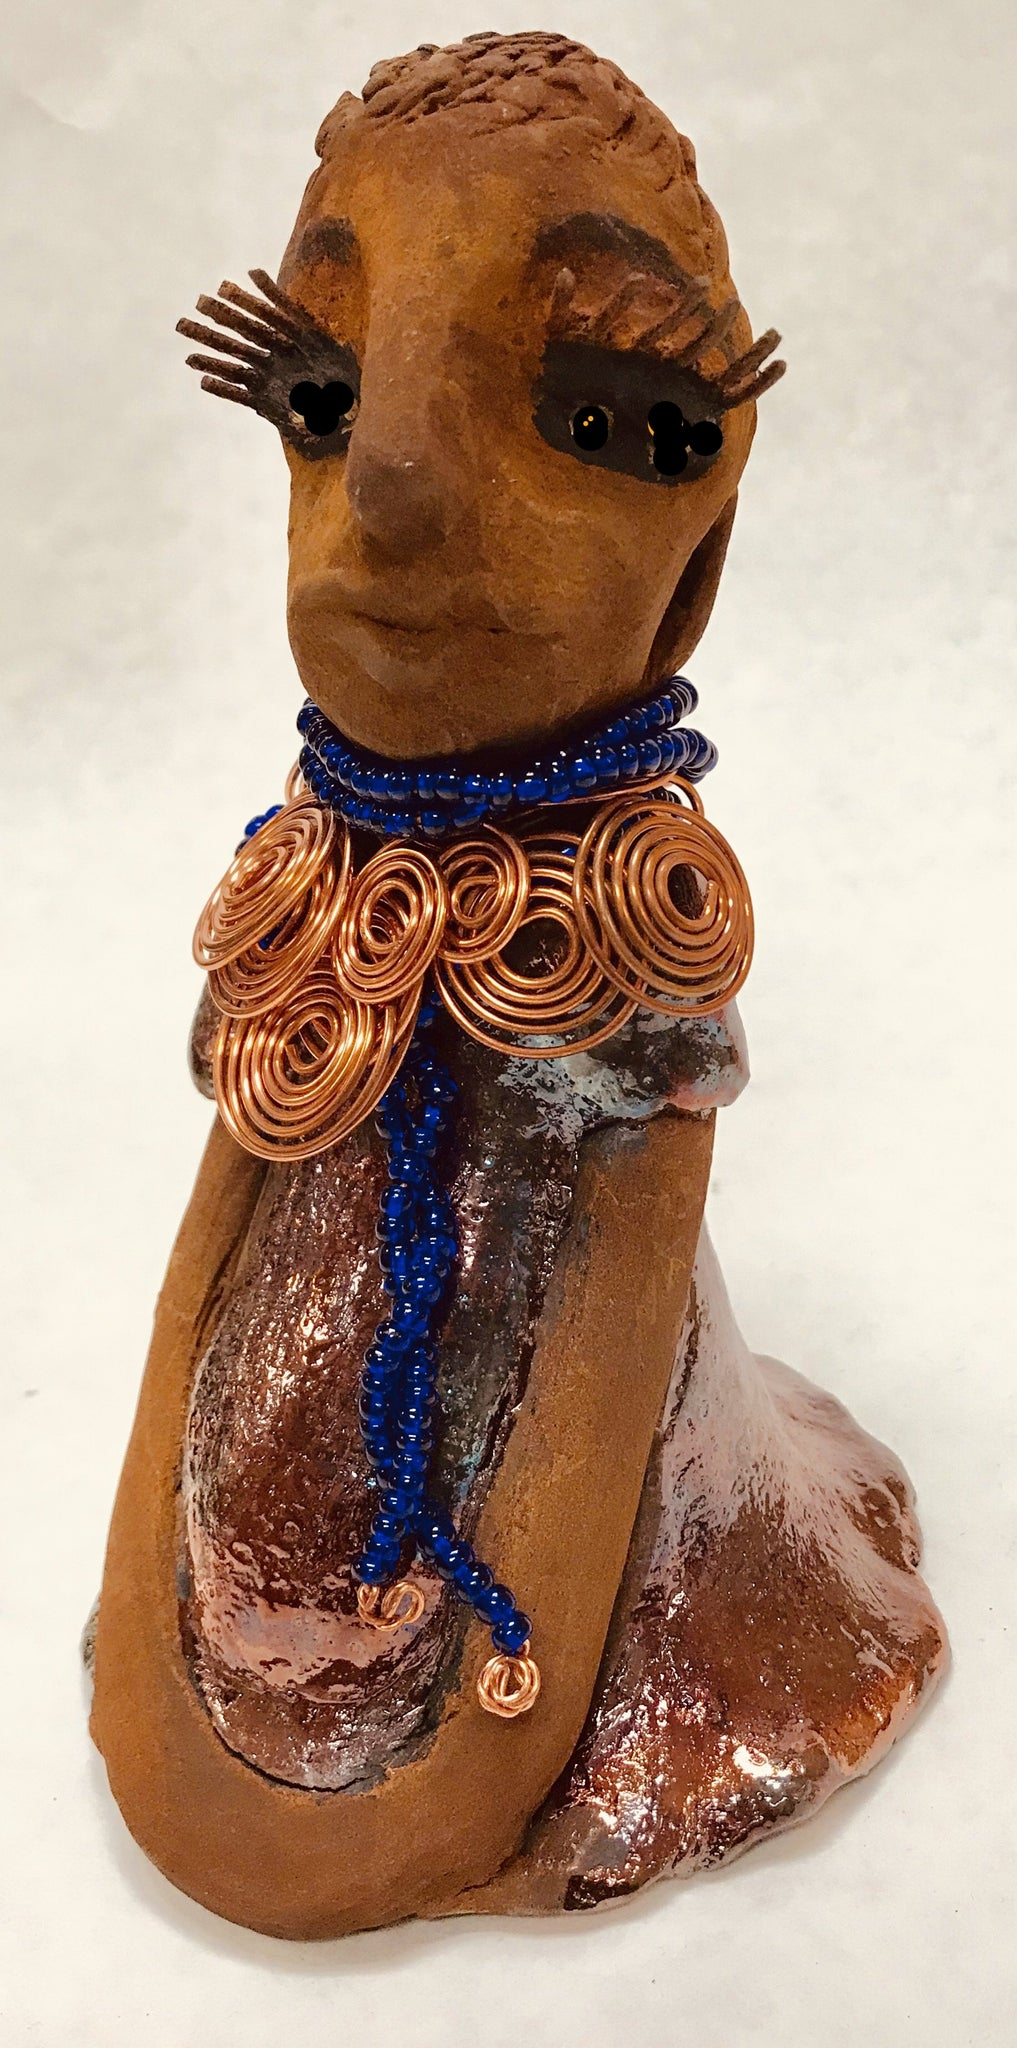 "Tattayana stands 8"" x 4.5"" x 5"" and weighs 1.02  lbs. She has a lovely honey brown complexion with reddish brTattayanaown lips. She has a short braided hairstyle.  Tattayana has a colorful metallic antique copper glazed dress. She wears spiral copper wire necklaces on top of an aqua blue beaded collar.  Tattayana has her long loving arms rest at her side. With eyes wide opened,Tattayana  has hopes of finding a new home."